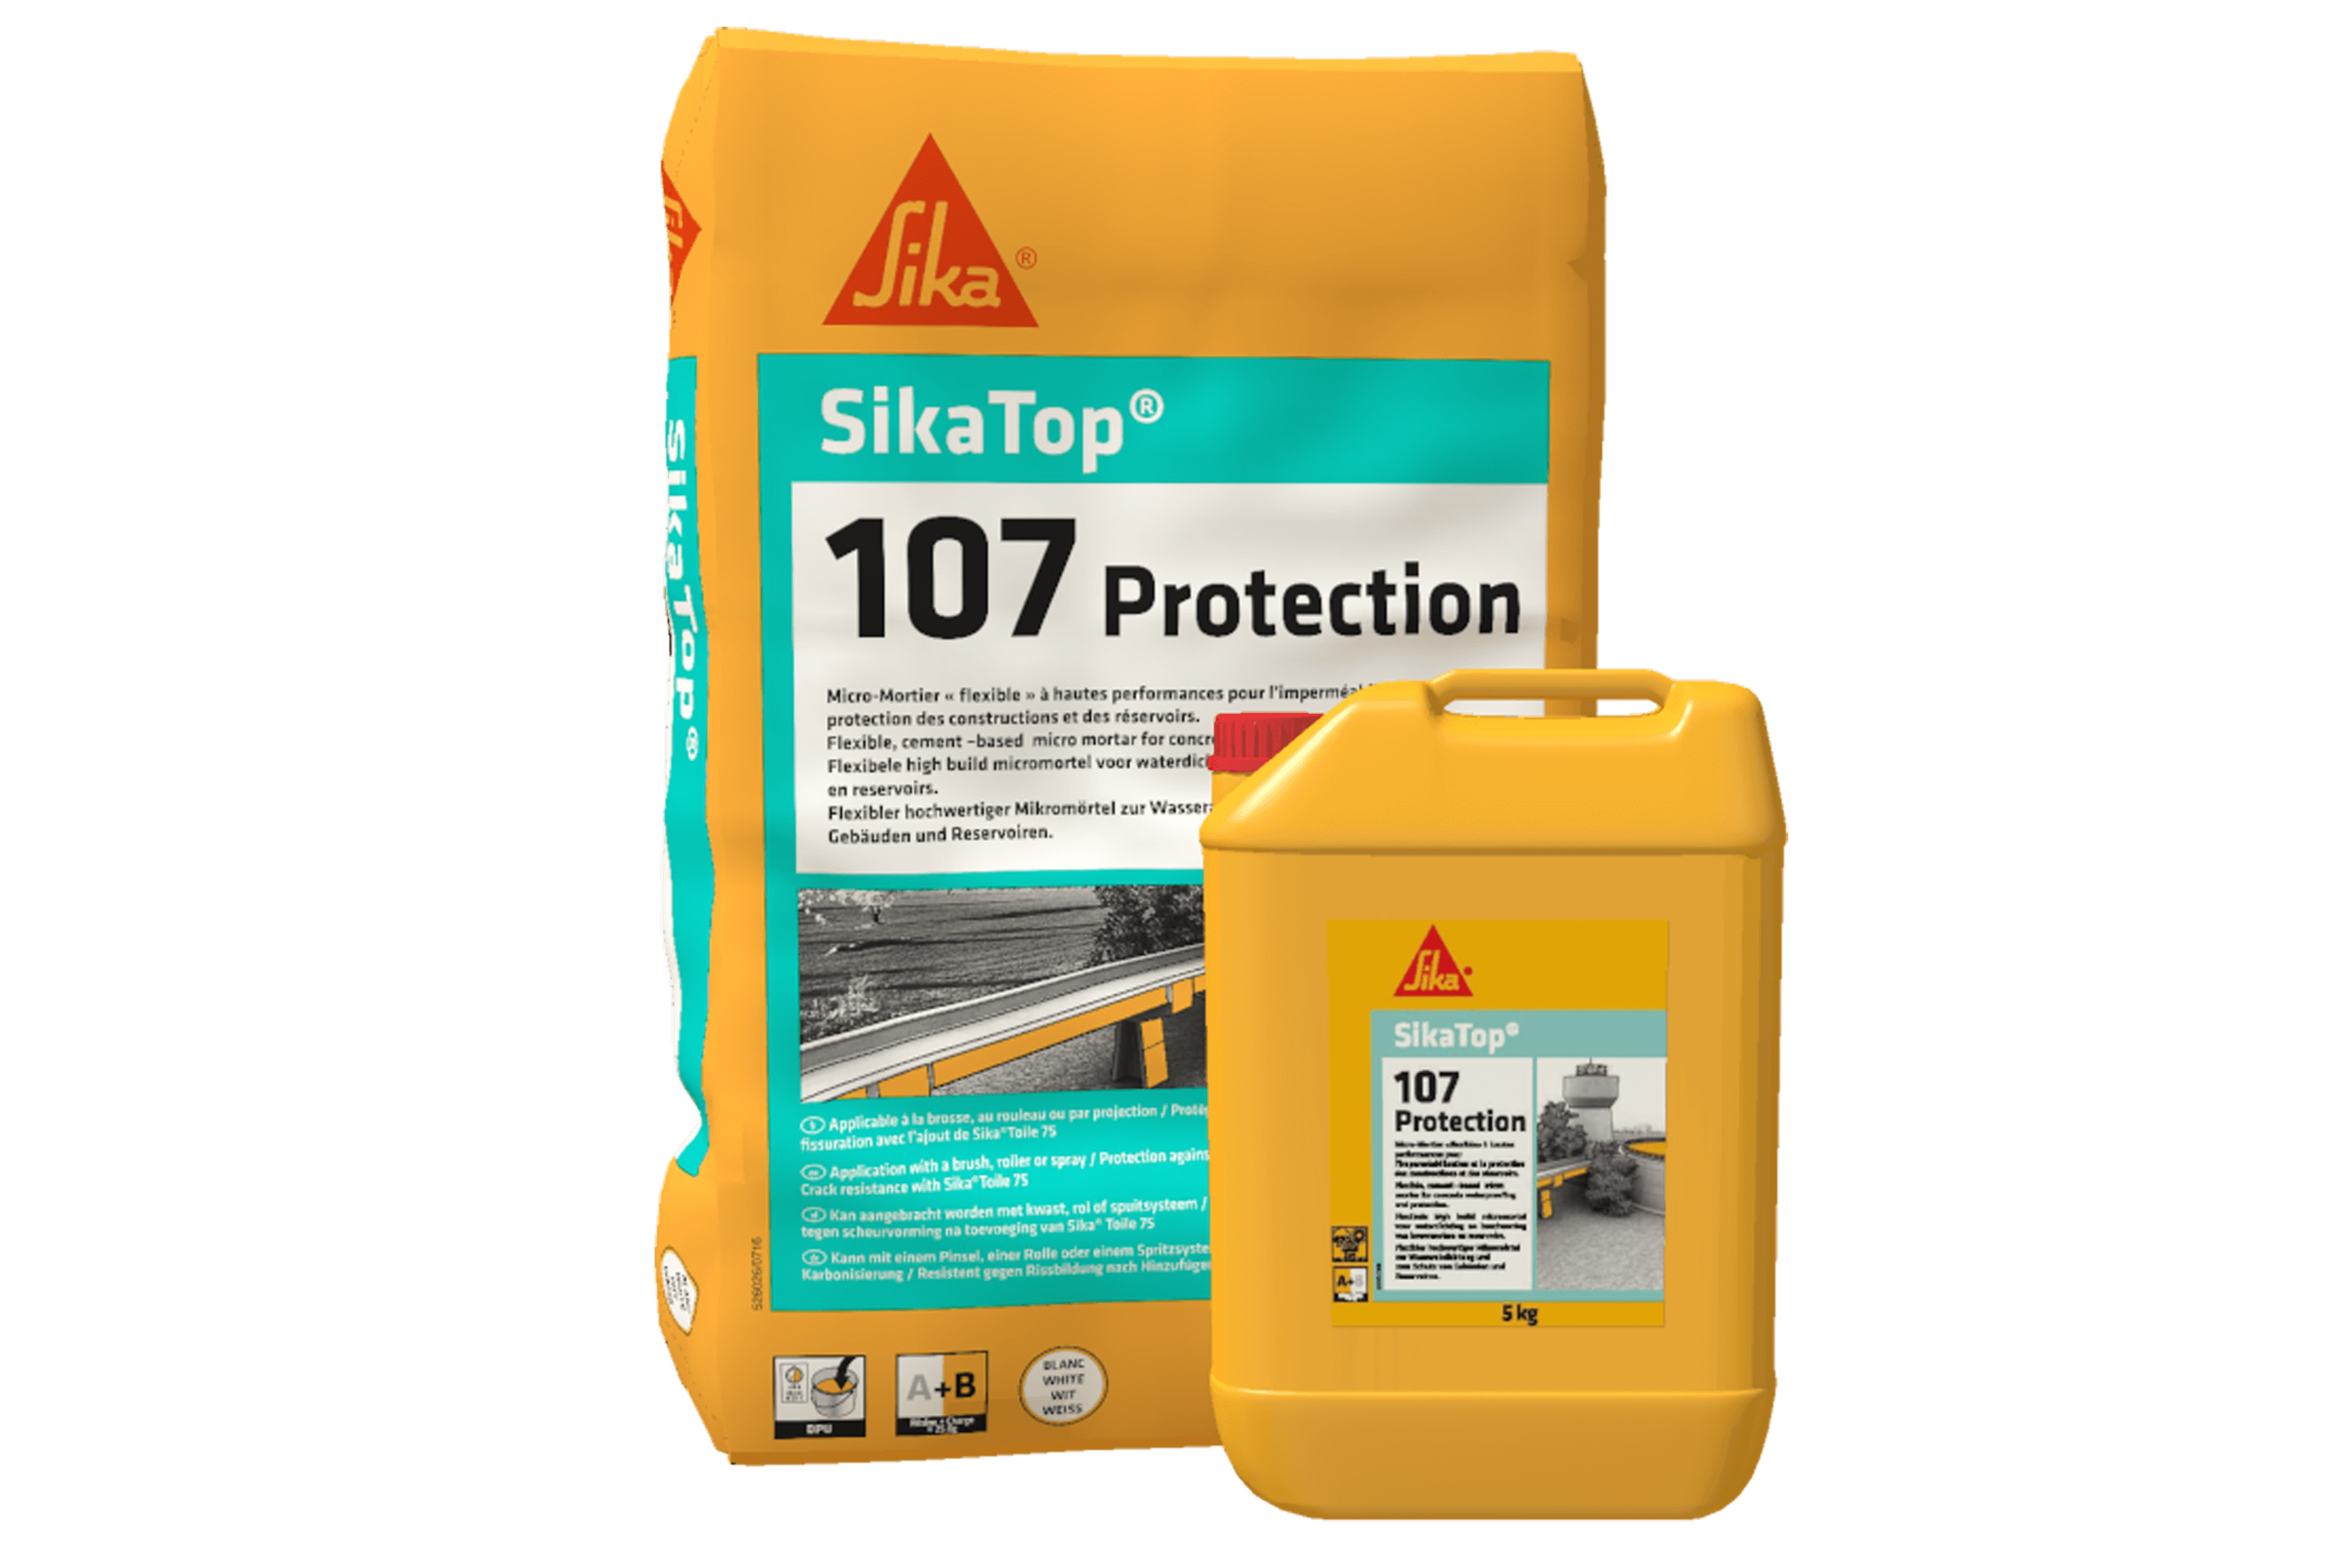 SikaTop®-107 Protection